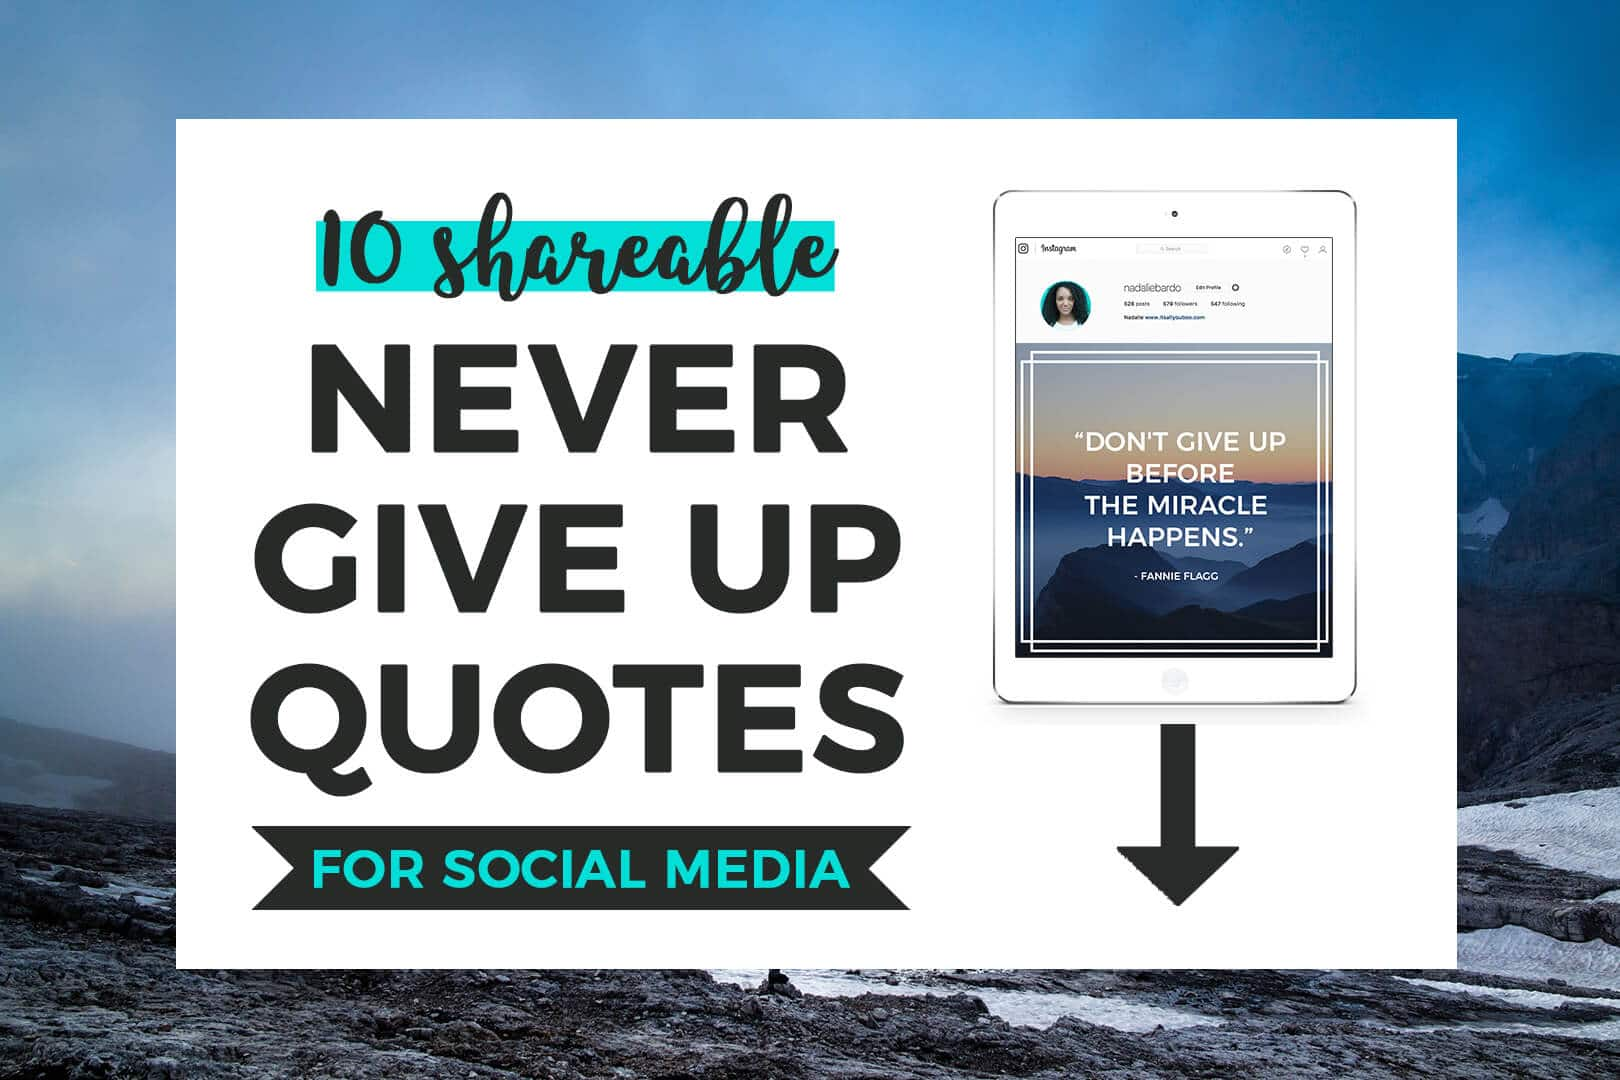 Download 10 Shareable Never Give Up Quotes for Social Media + preview of quote on iPad